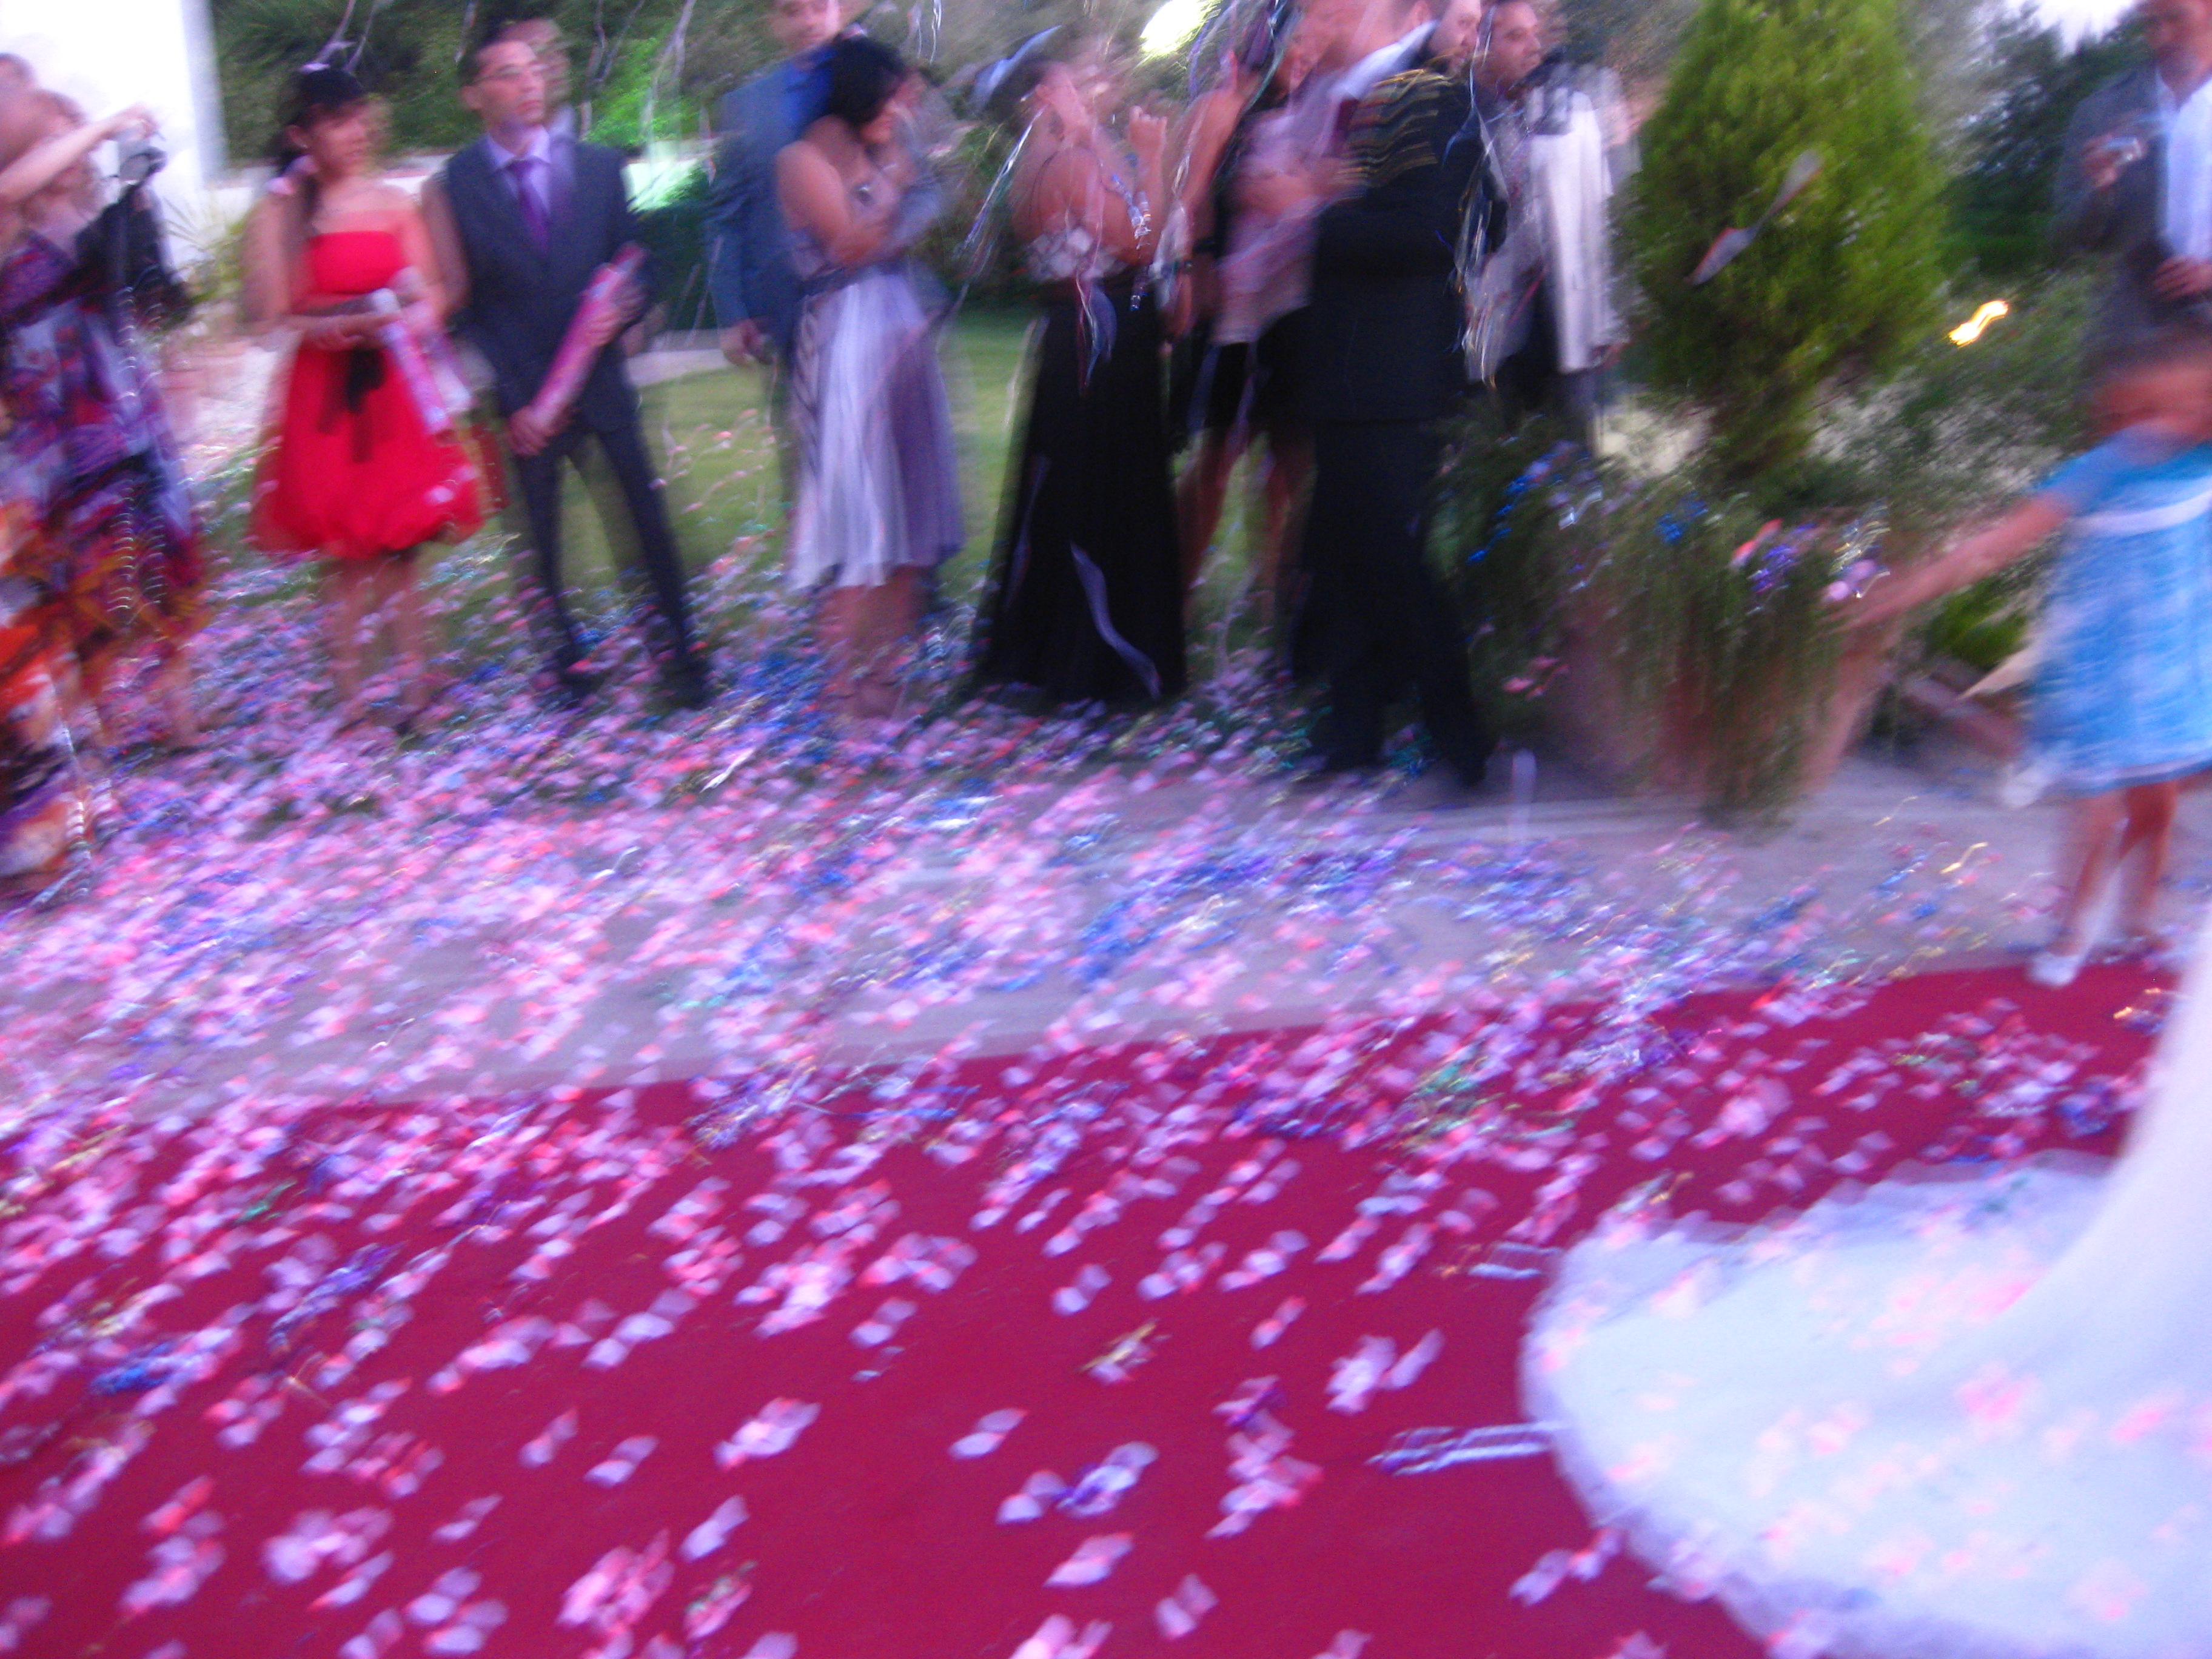 As the married couple left the tent, everyone showered them with confetti from the super poppers.